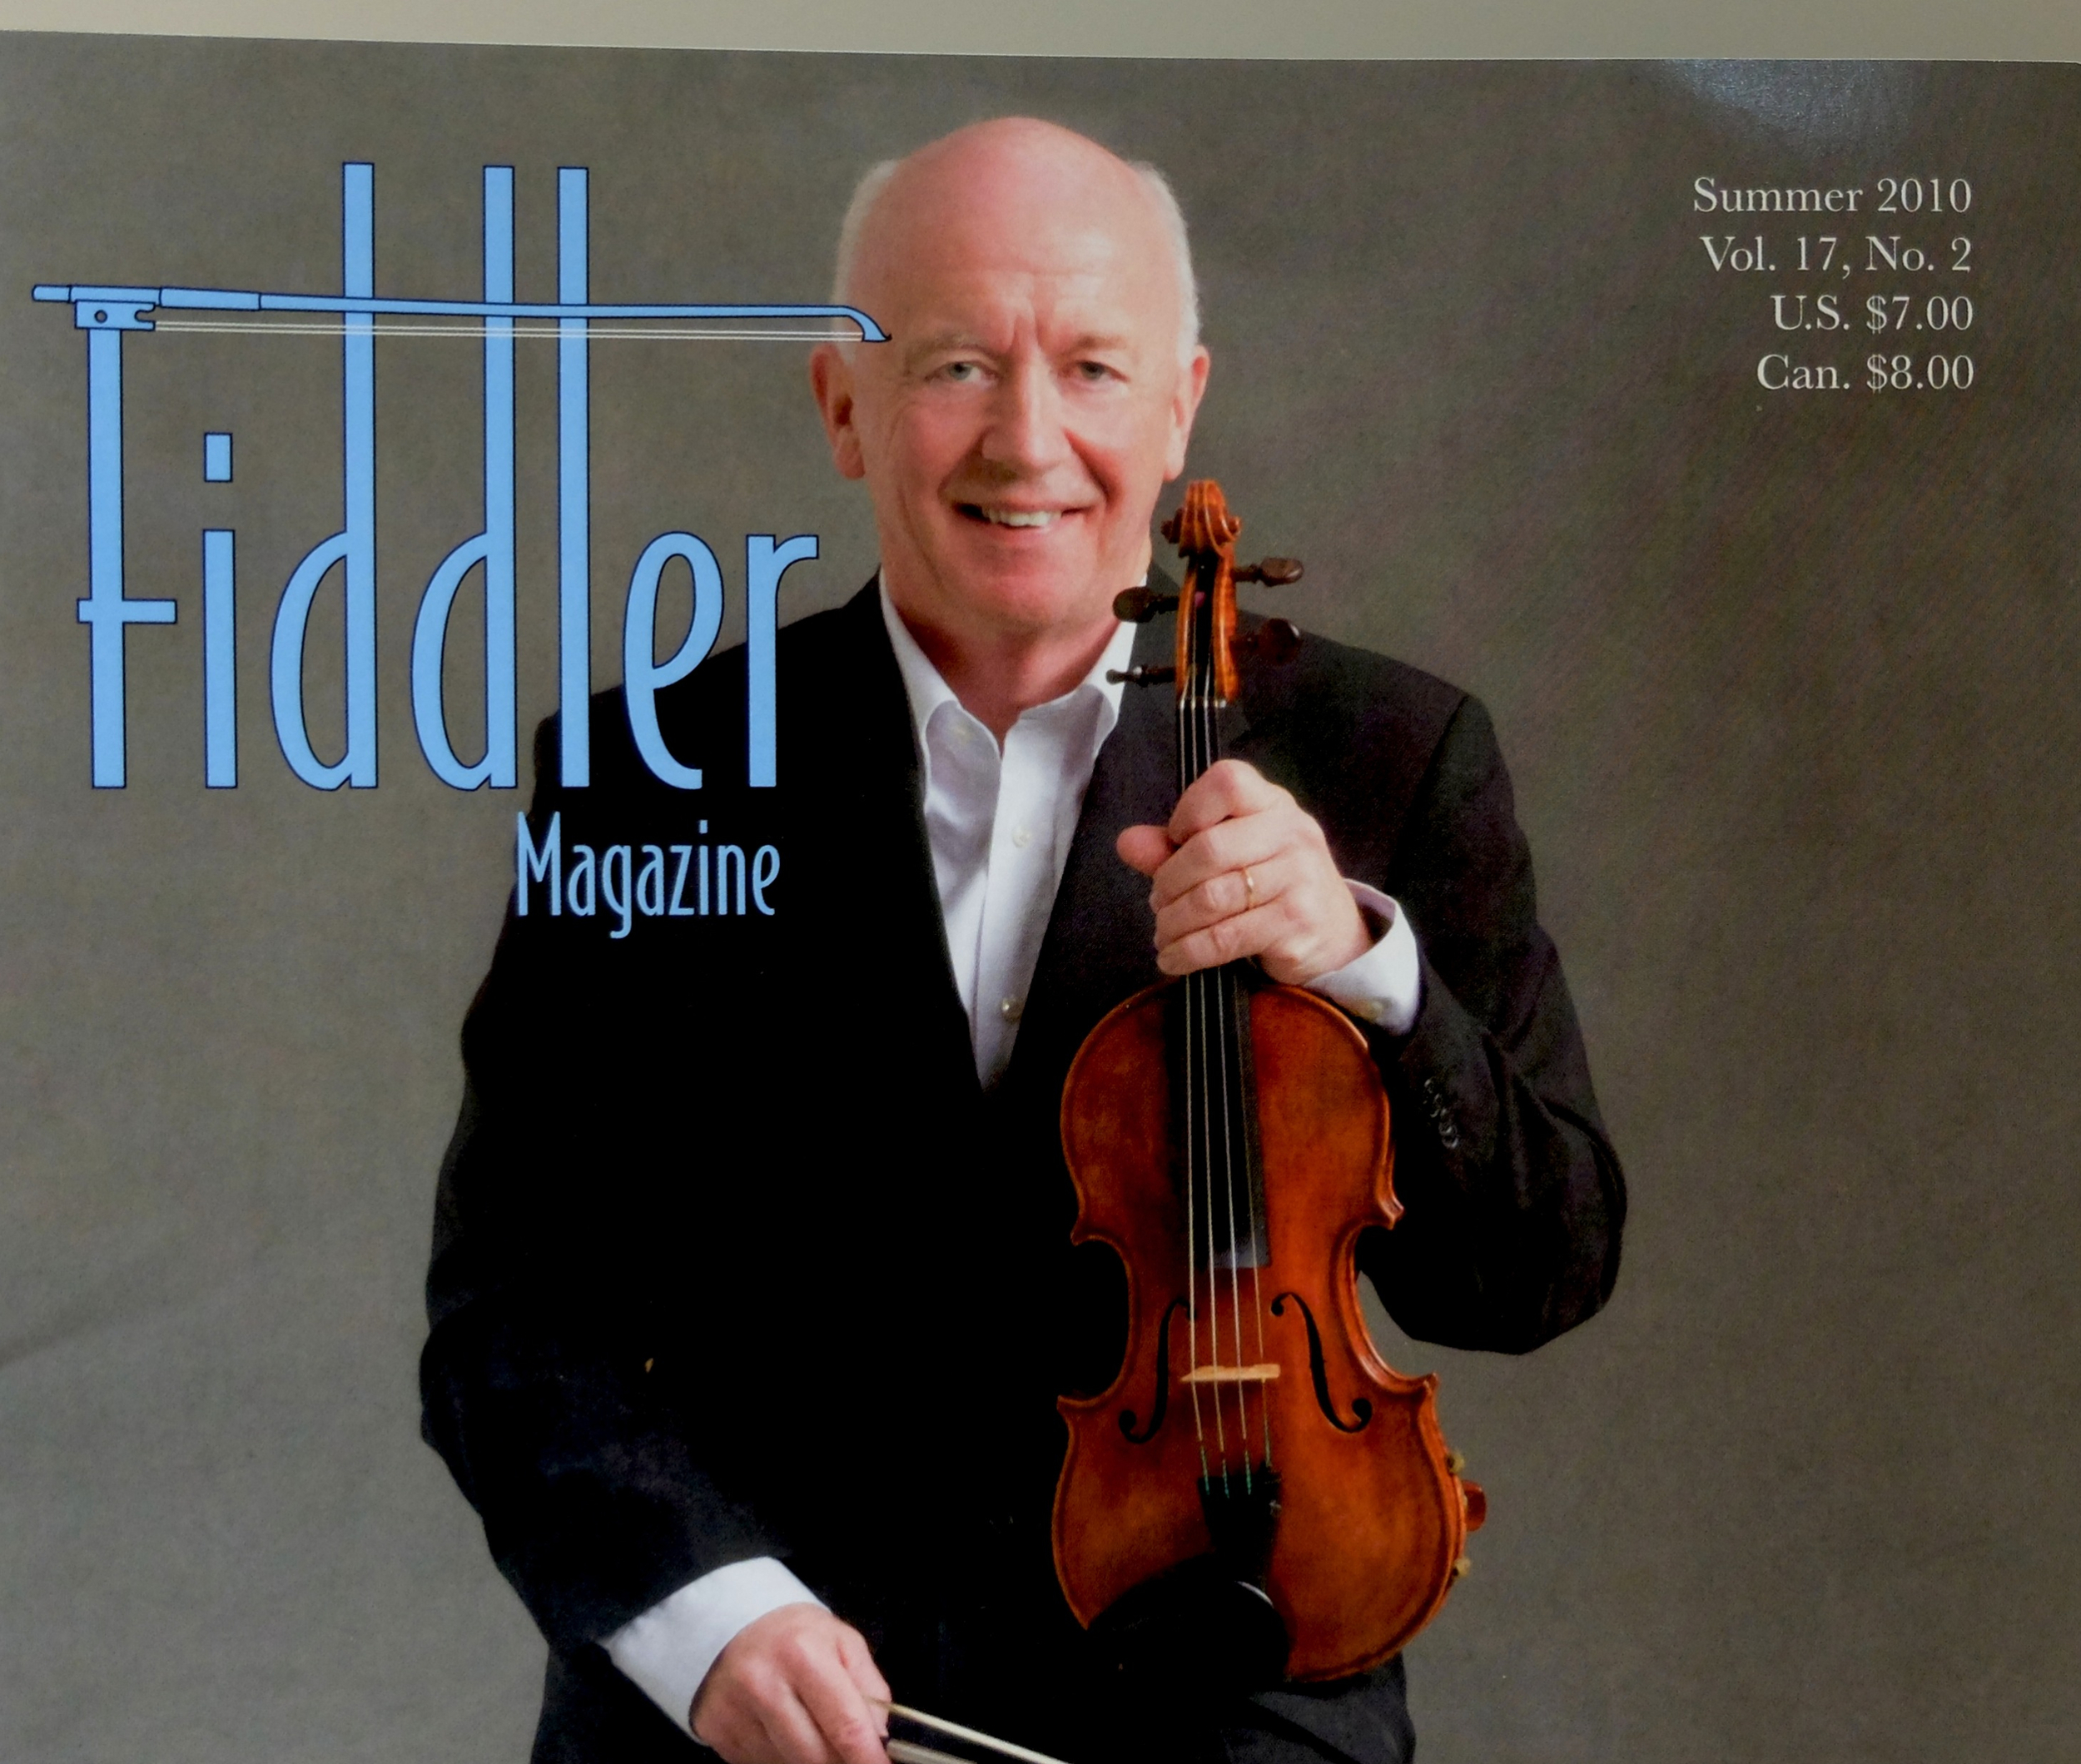 Seamus on cover of Fiddler Magazine, USA 2010     www.fiddle.com